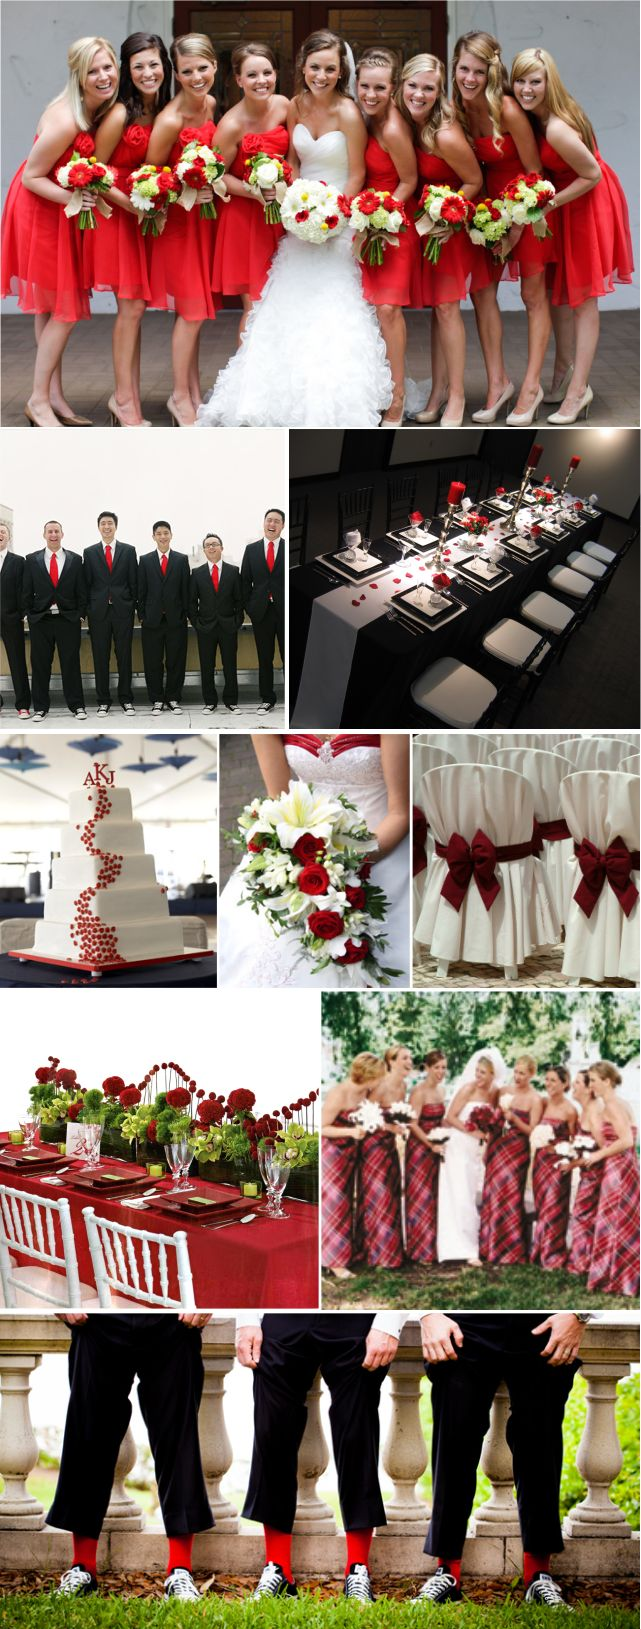 It's a Redding Wedding! Get it? We could wear red dresses. With pink peonies, green succulents, and tiger lilies.